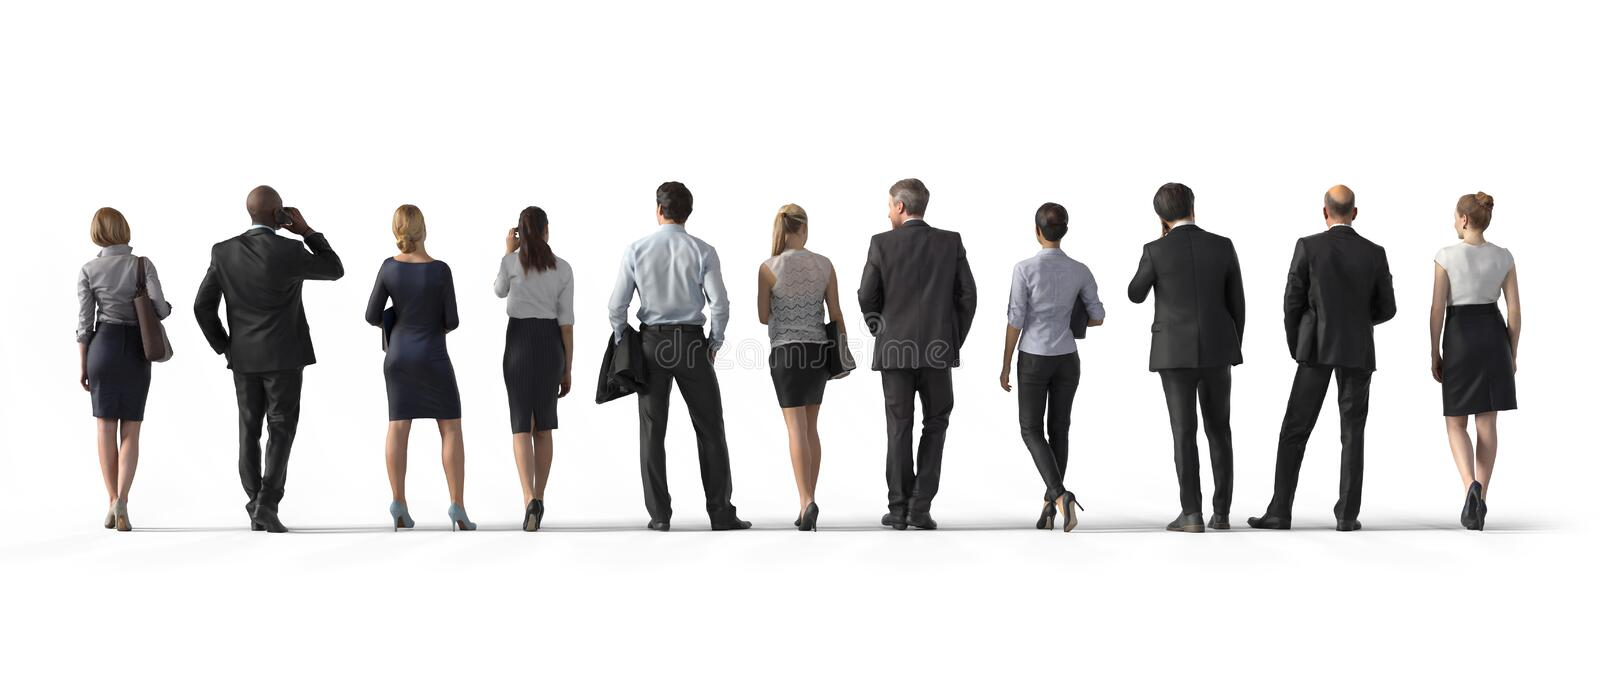 Back view of standing business people. Illustration on white background, 3d rendering isolated. royalty free illustration